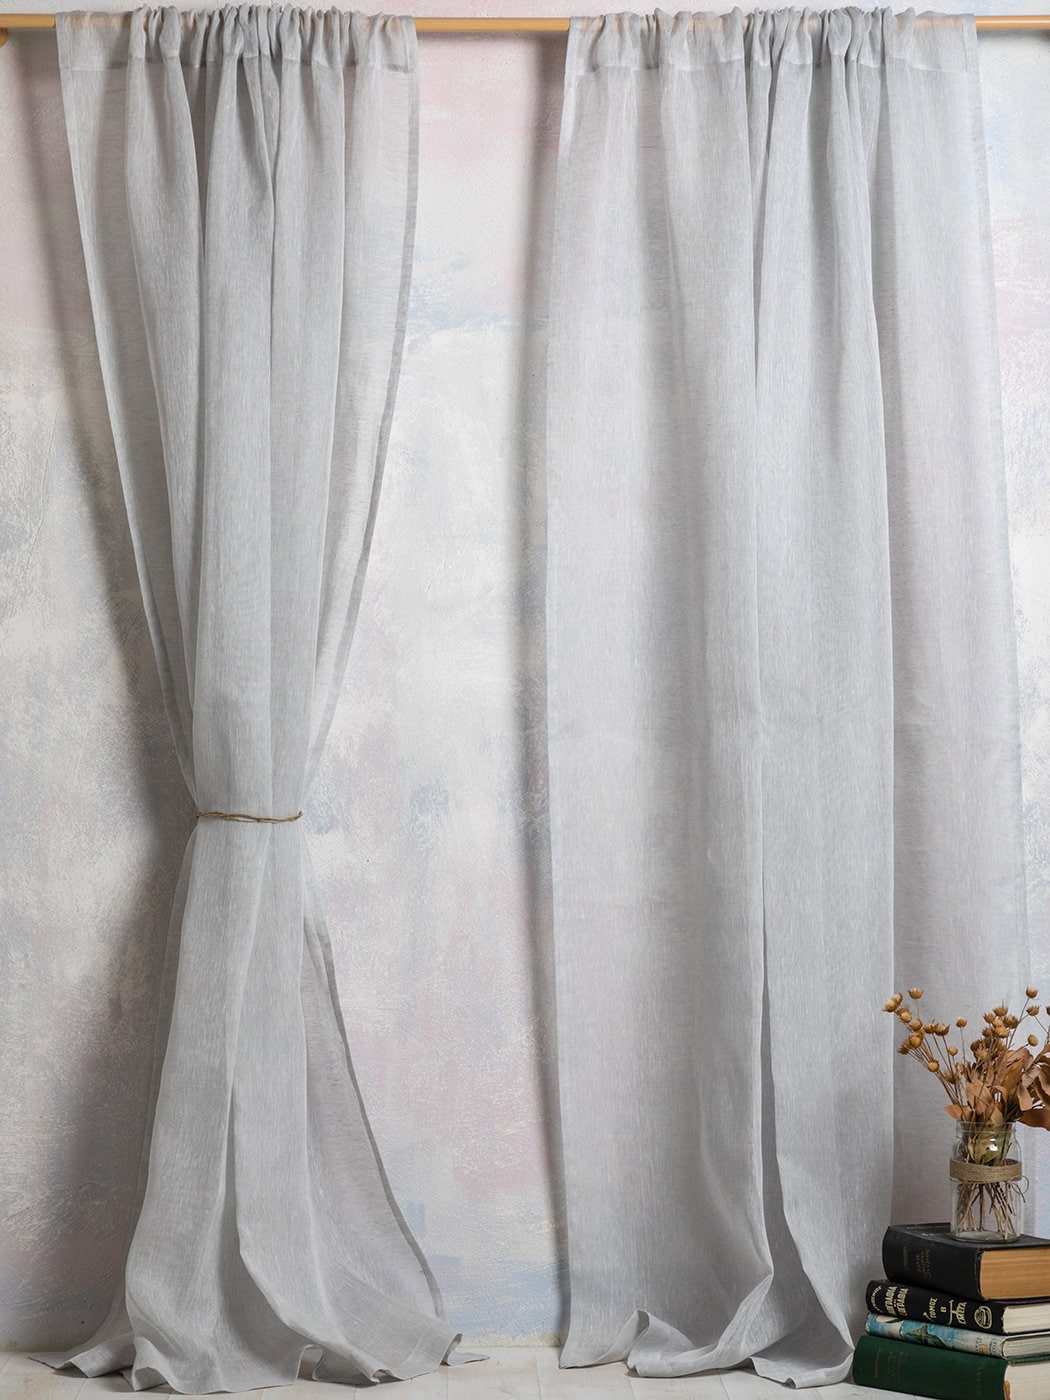 Linen Curtains Curtains Linen Panels Sheer Linen Curtains Light Grey Color A Pair Linen Panels With Rod Pocket Width 67 170 Xcust Length